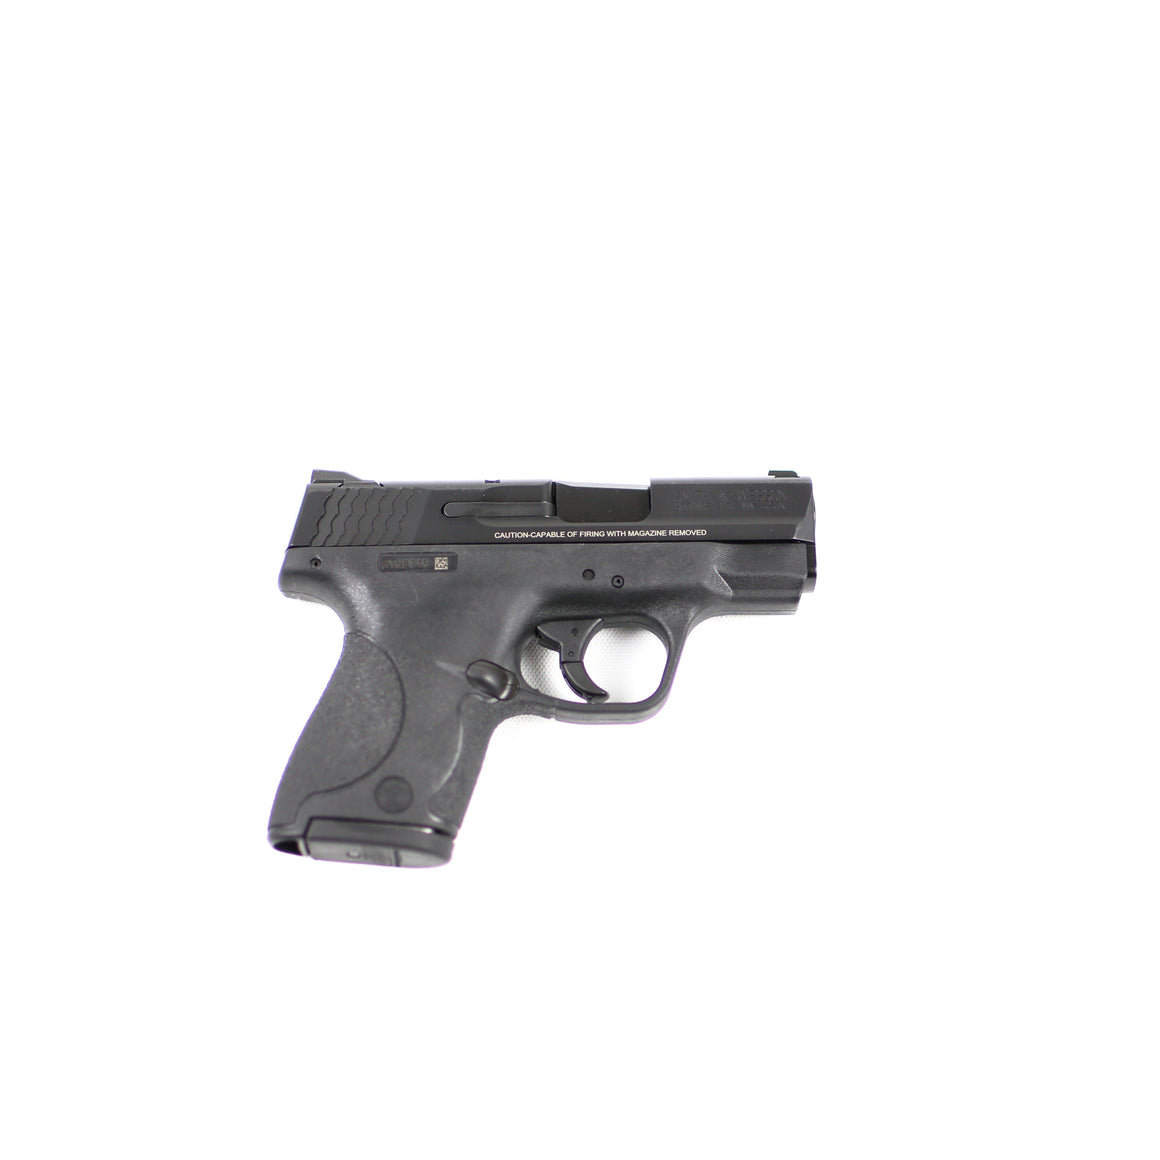 S&W MP Shield - 9mm